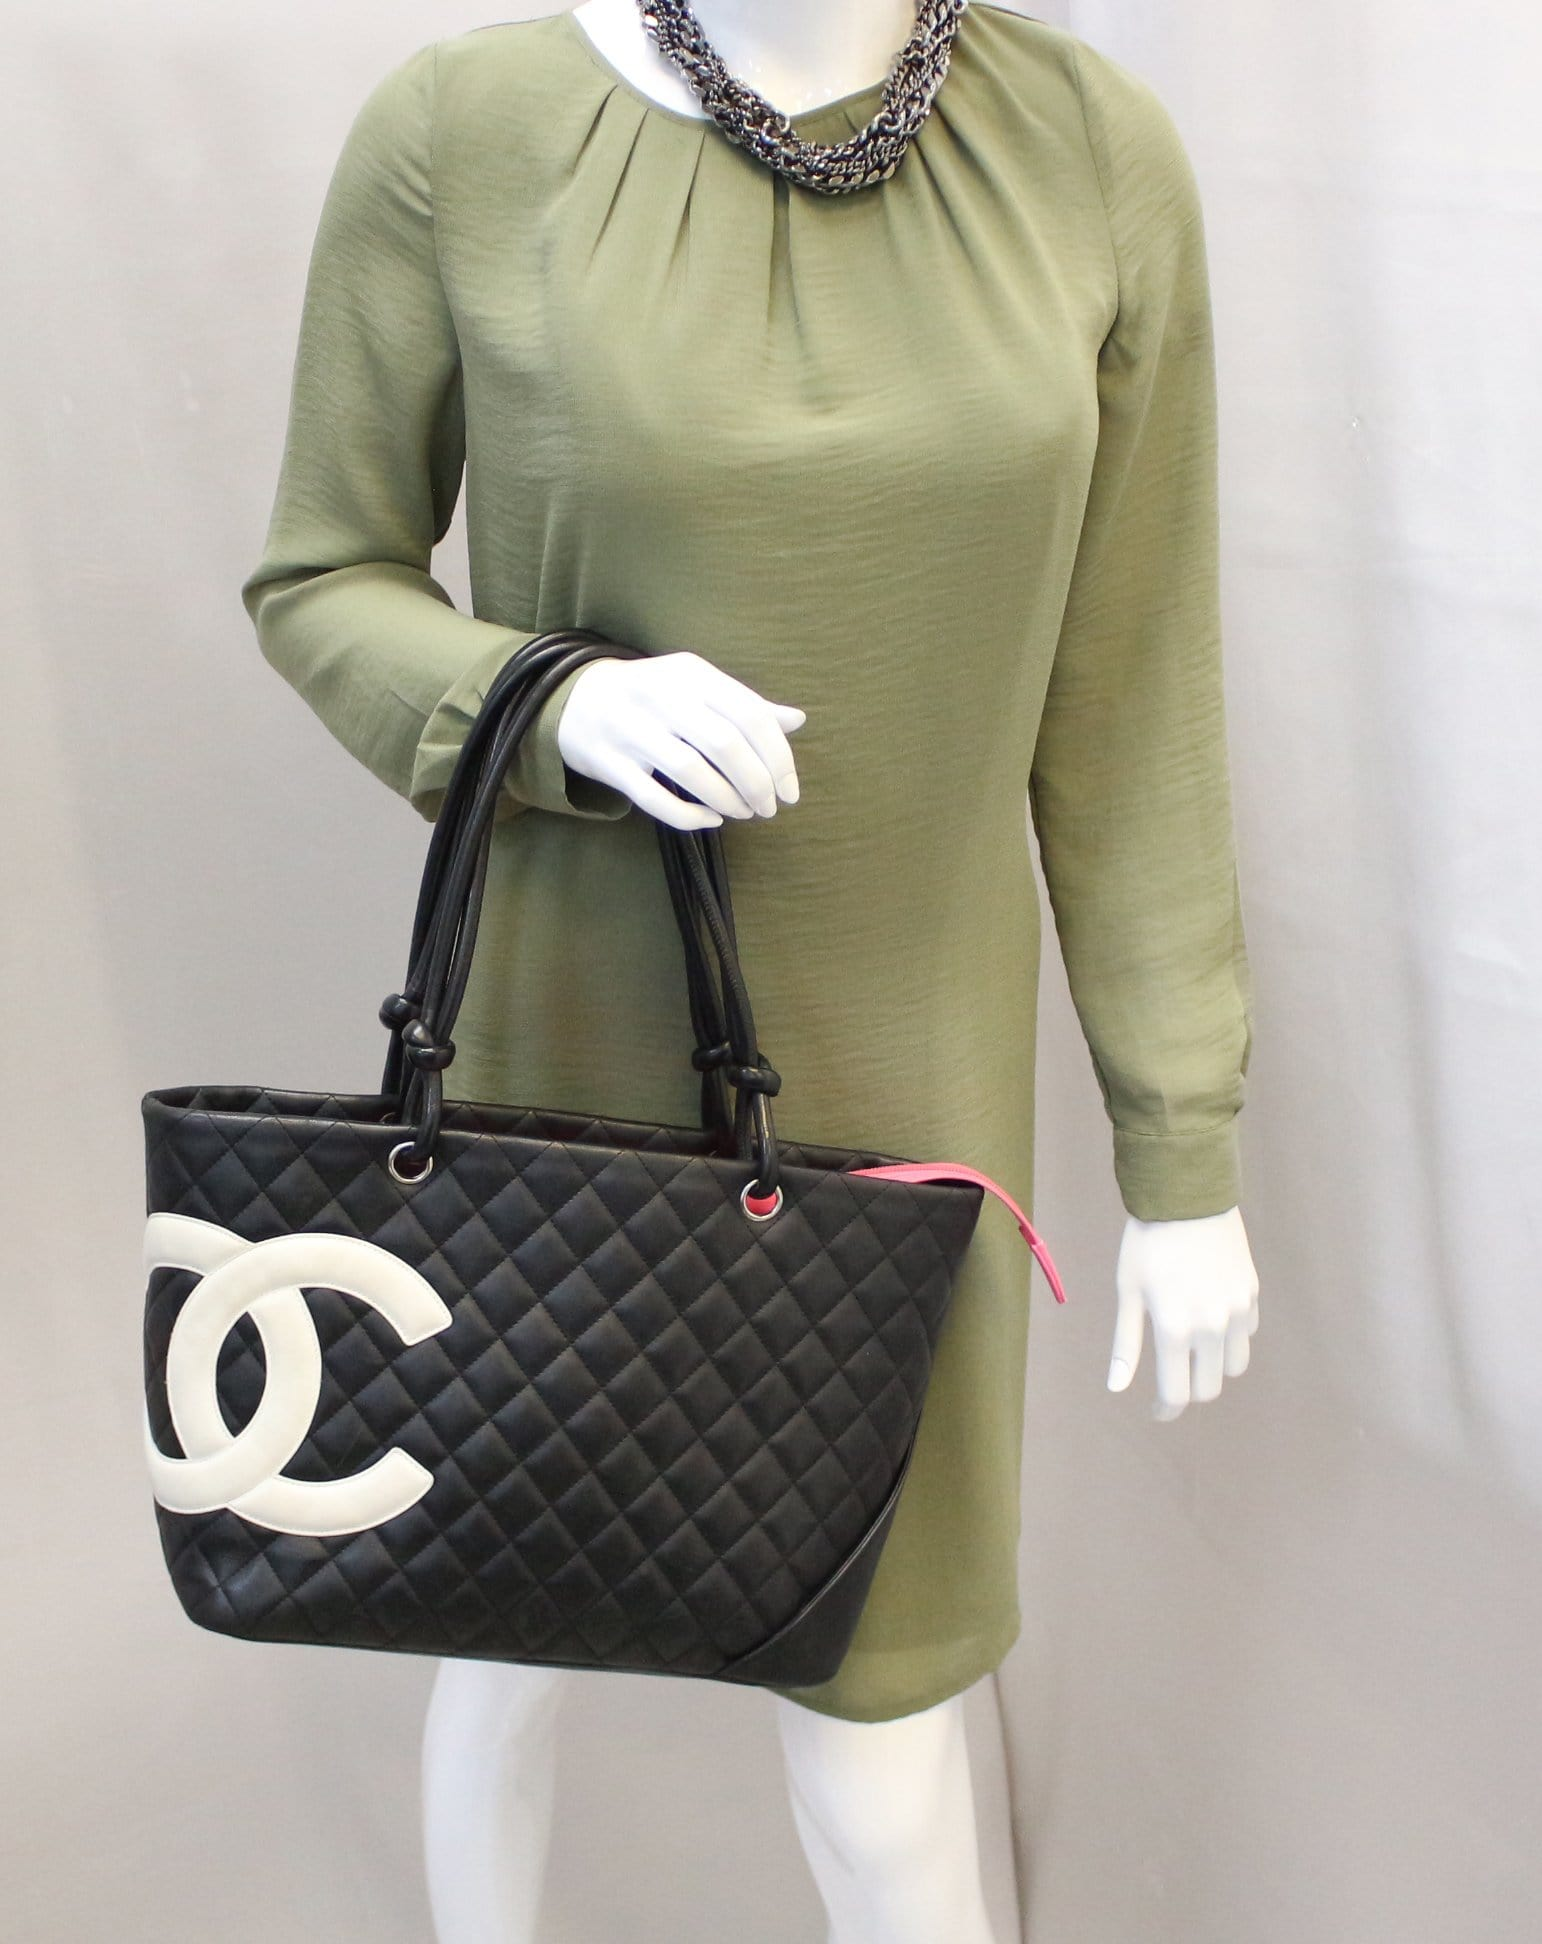 c556851f31ff CHANEL Black Quilted Leather Large Cambon Tote Bag